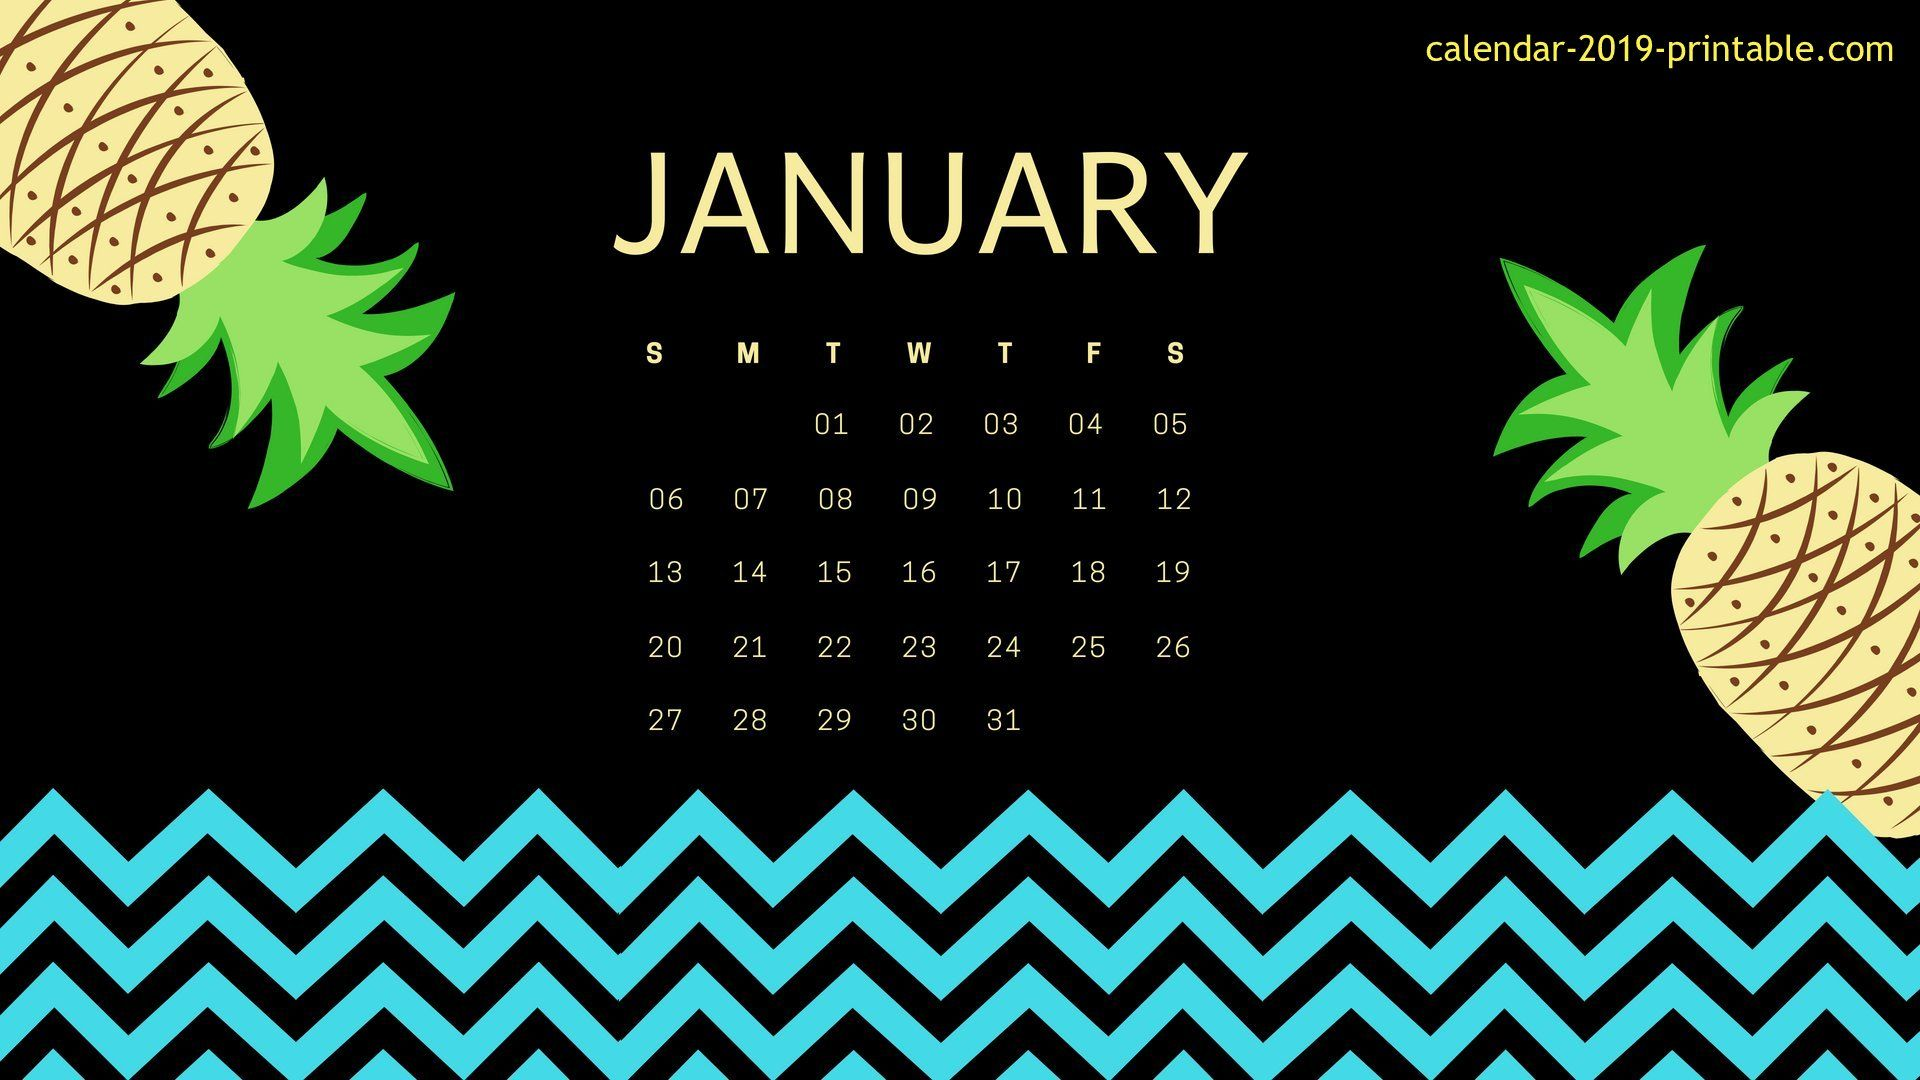 cute january 2019 calendar wallpaper Calendar wallpaper